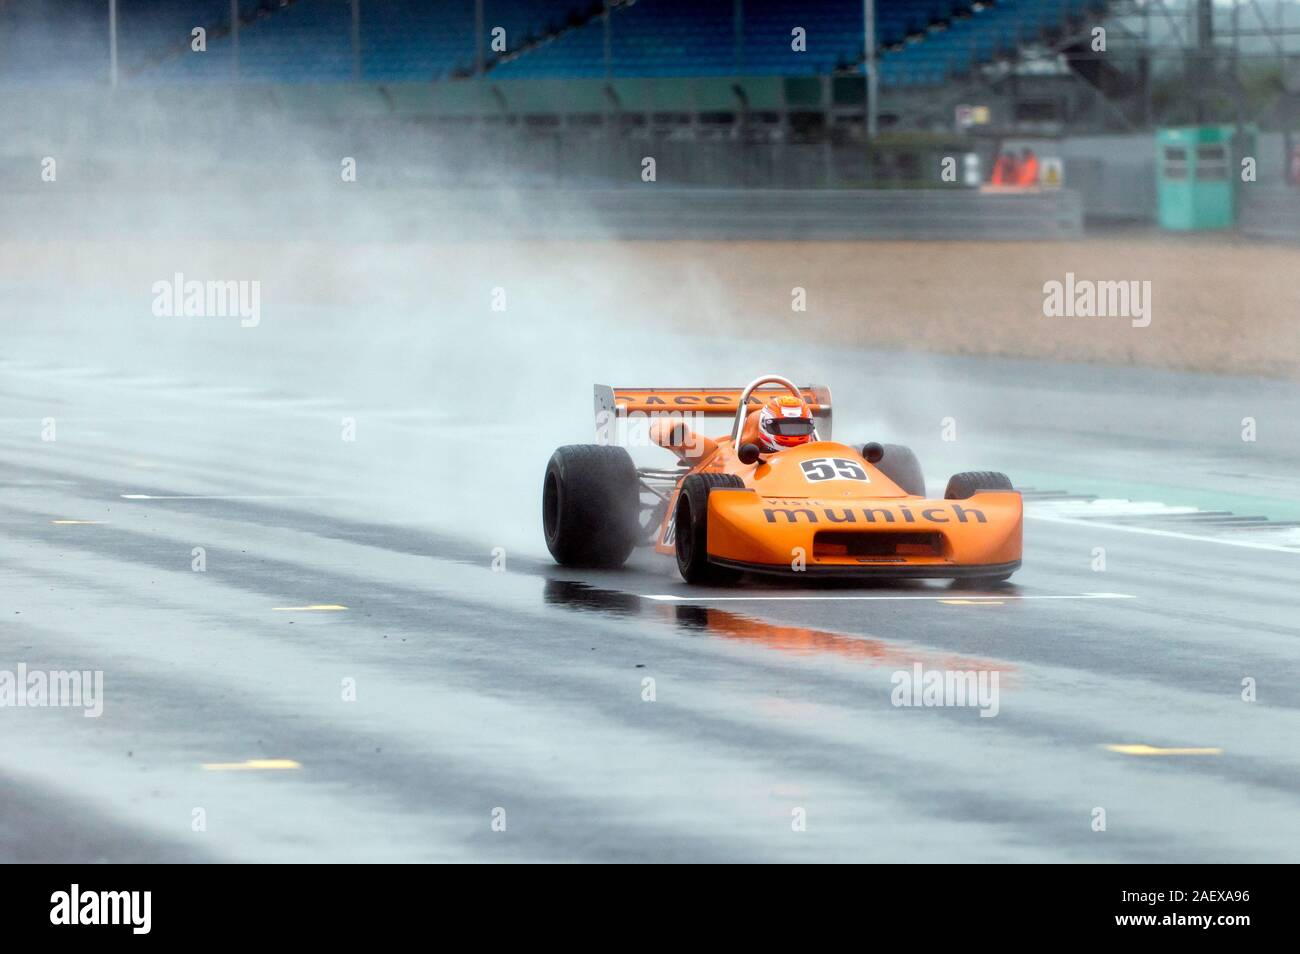 Stephen Futter driving his Orange, 1978, Ralt RT1, in the rain, during the HSCC Historic Formula 2 Race ('67 - '78), at the 2019 Silverstone Classic Stock Photo